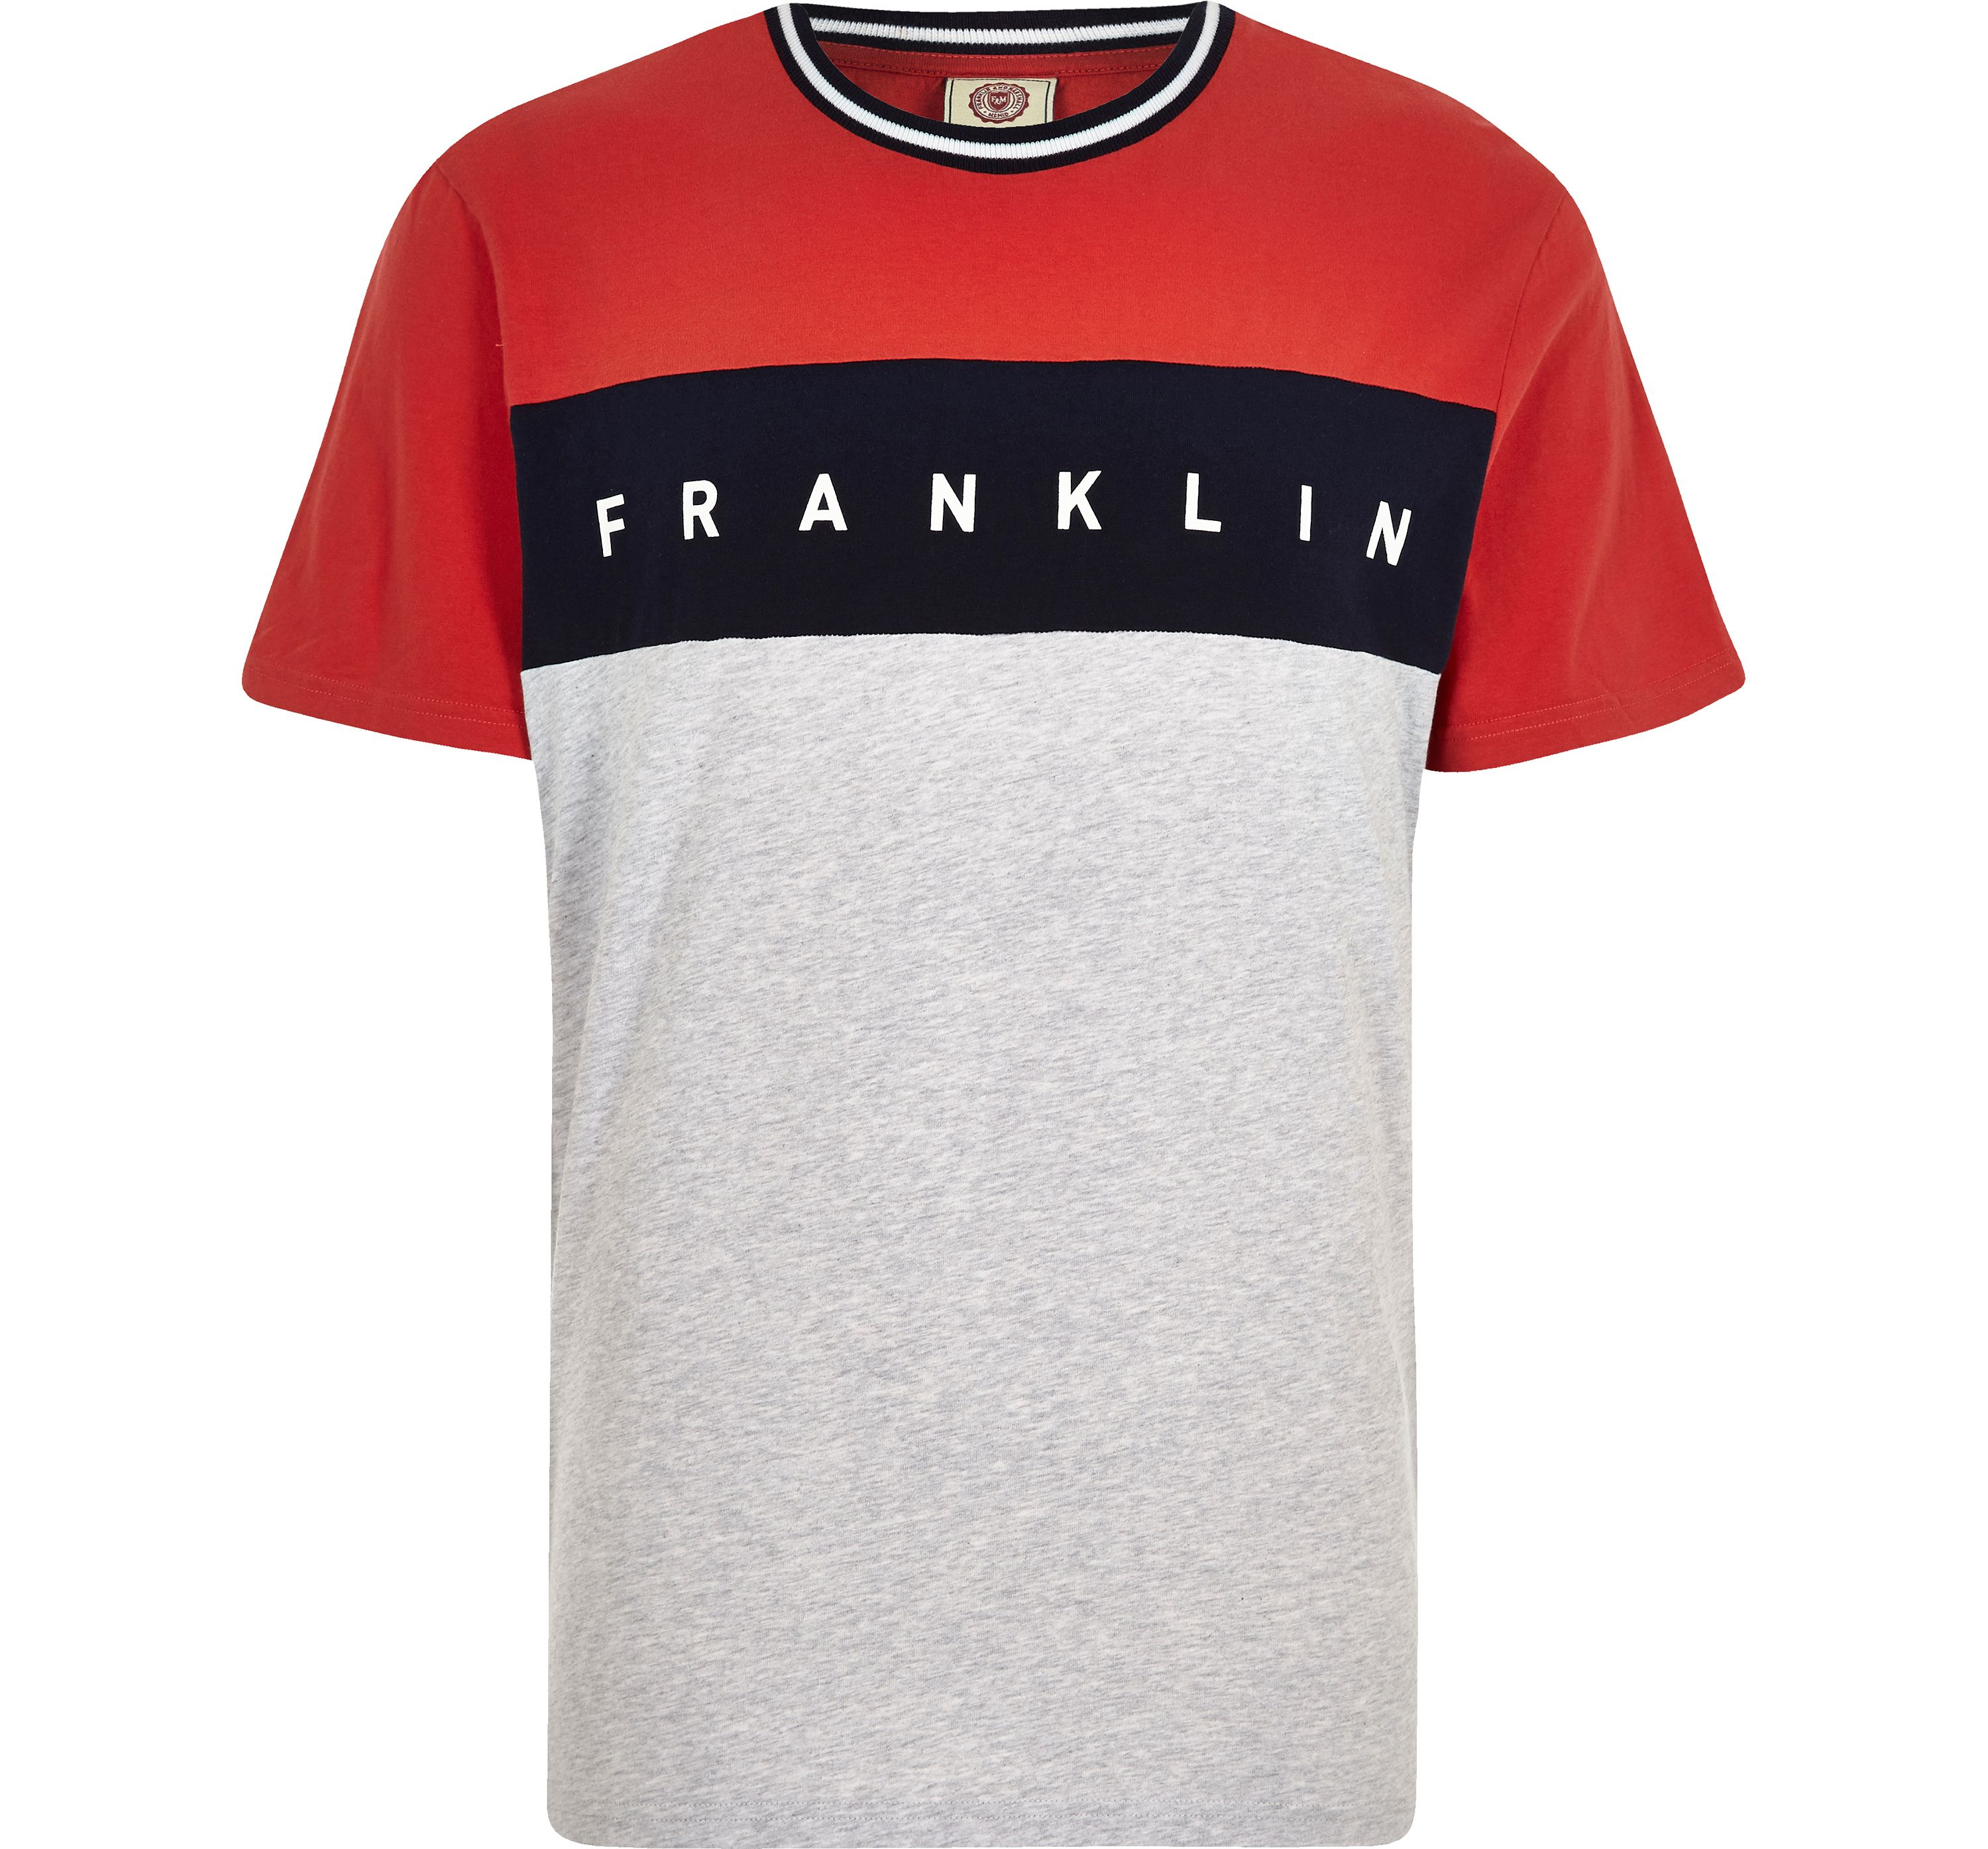 River Island Mens Red Franklin and Marshall colour block T-shirt